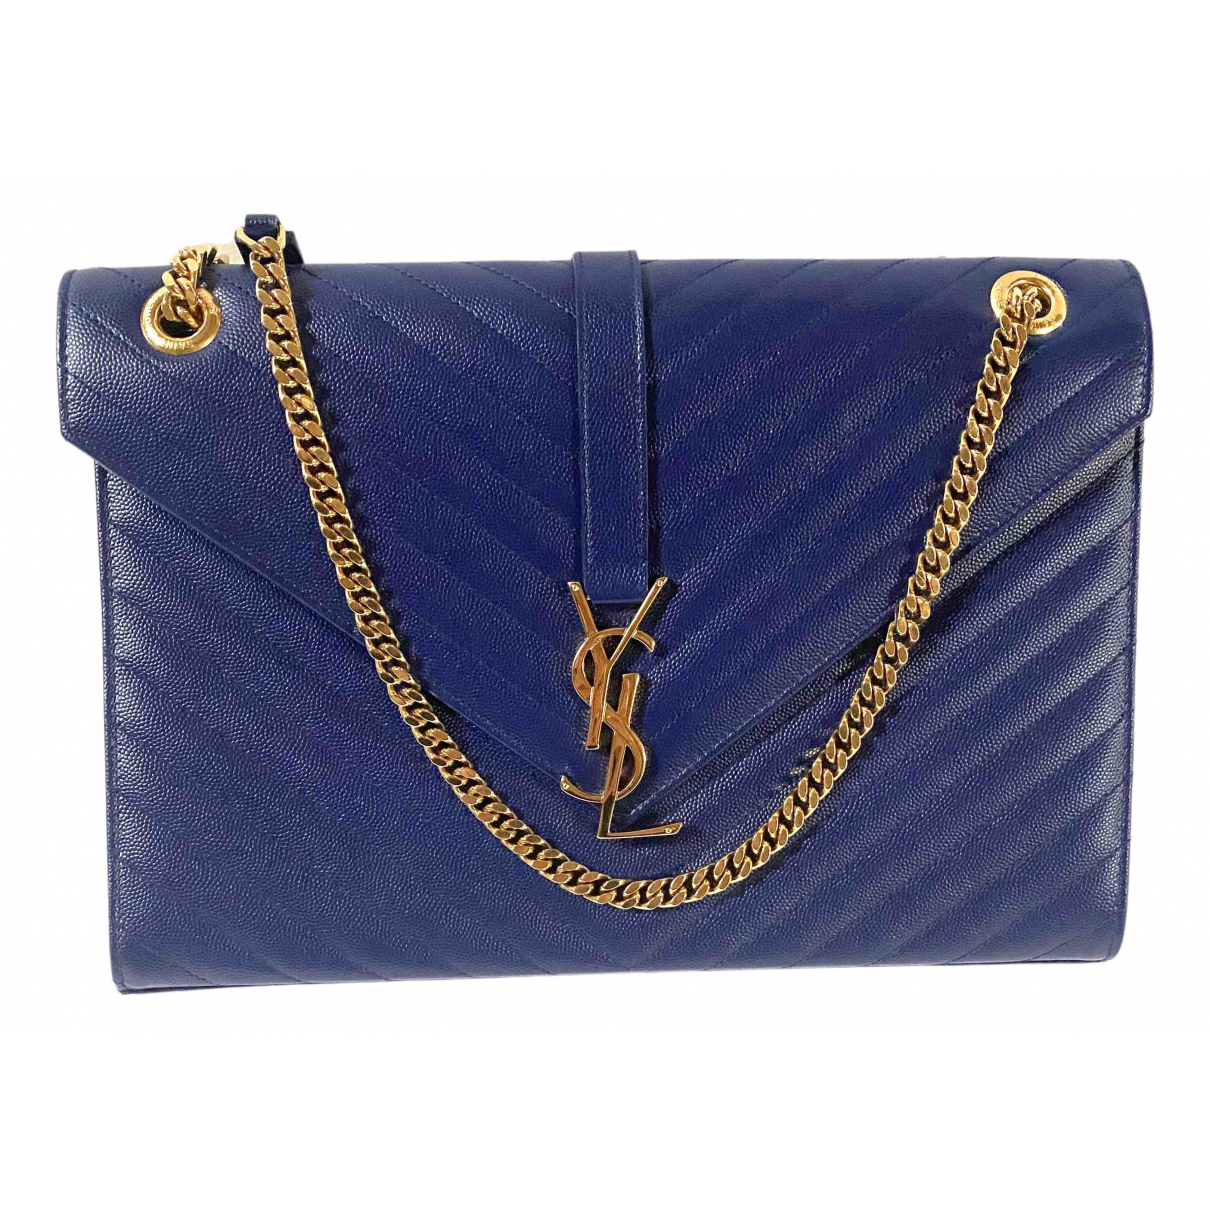 Saint Laurent Satchel monogramme Navy Leather handbag for Women N